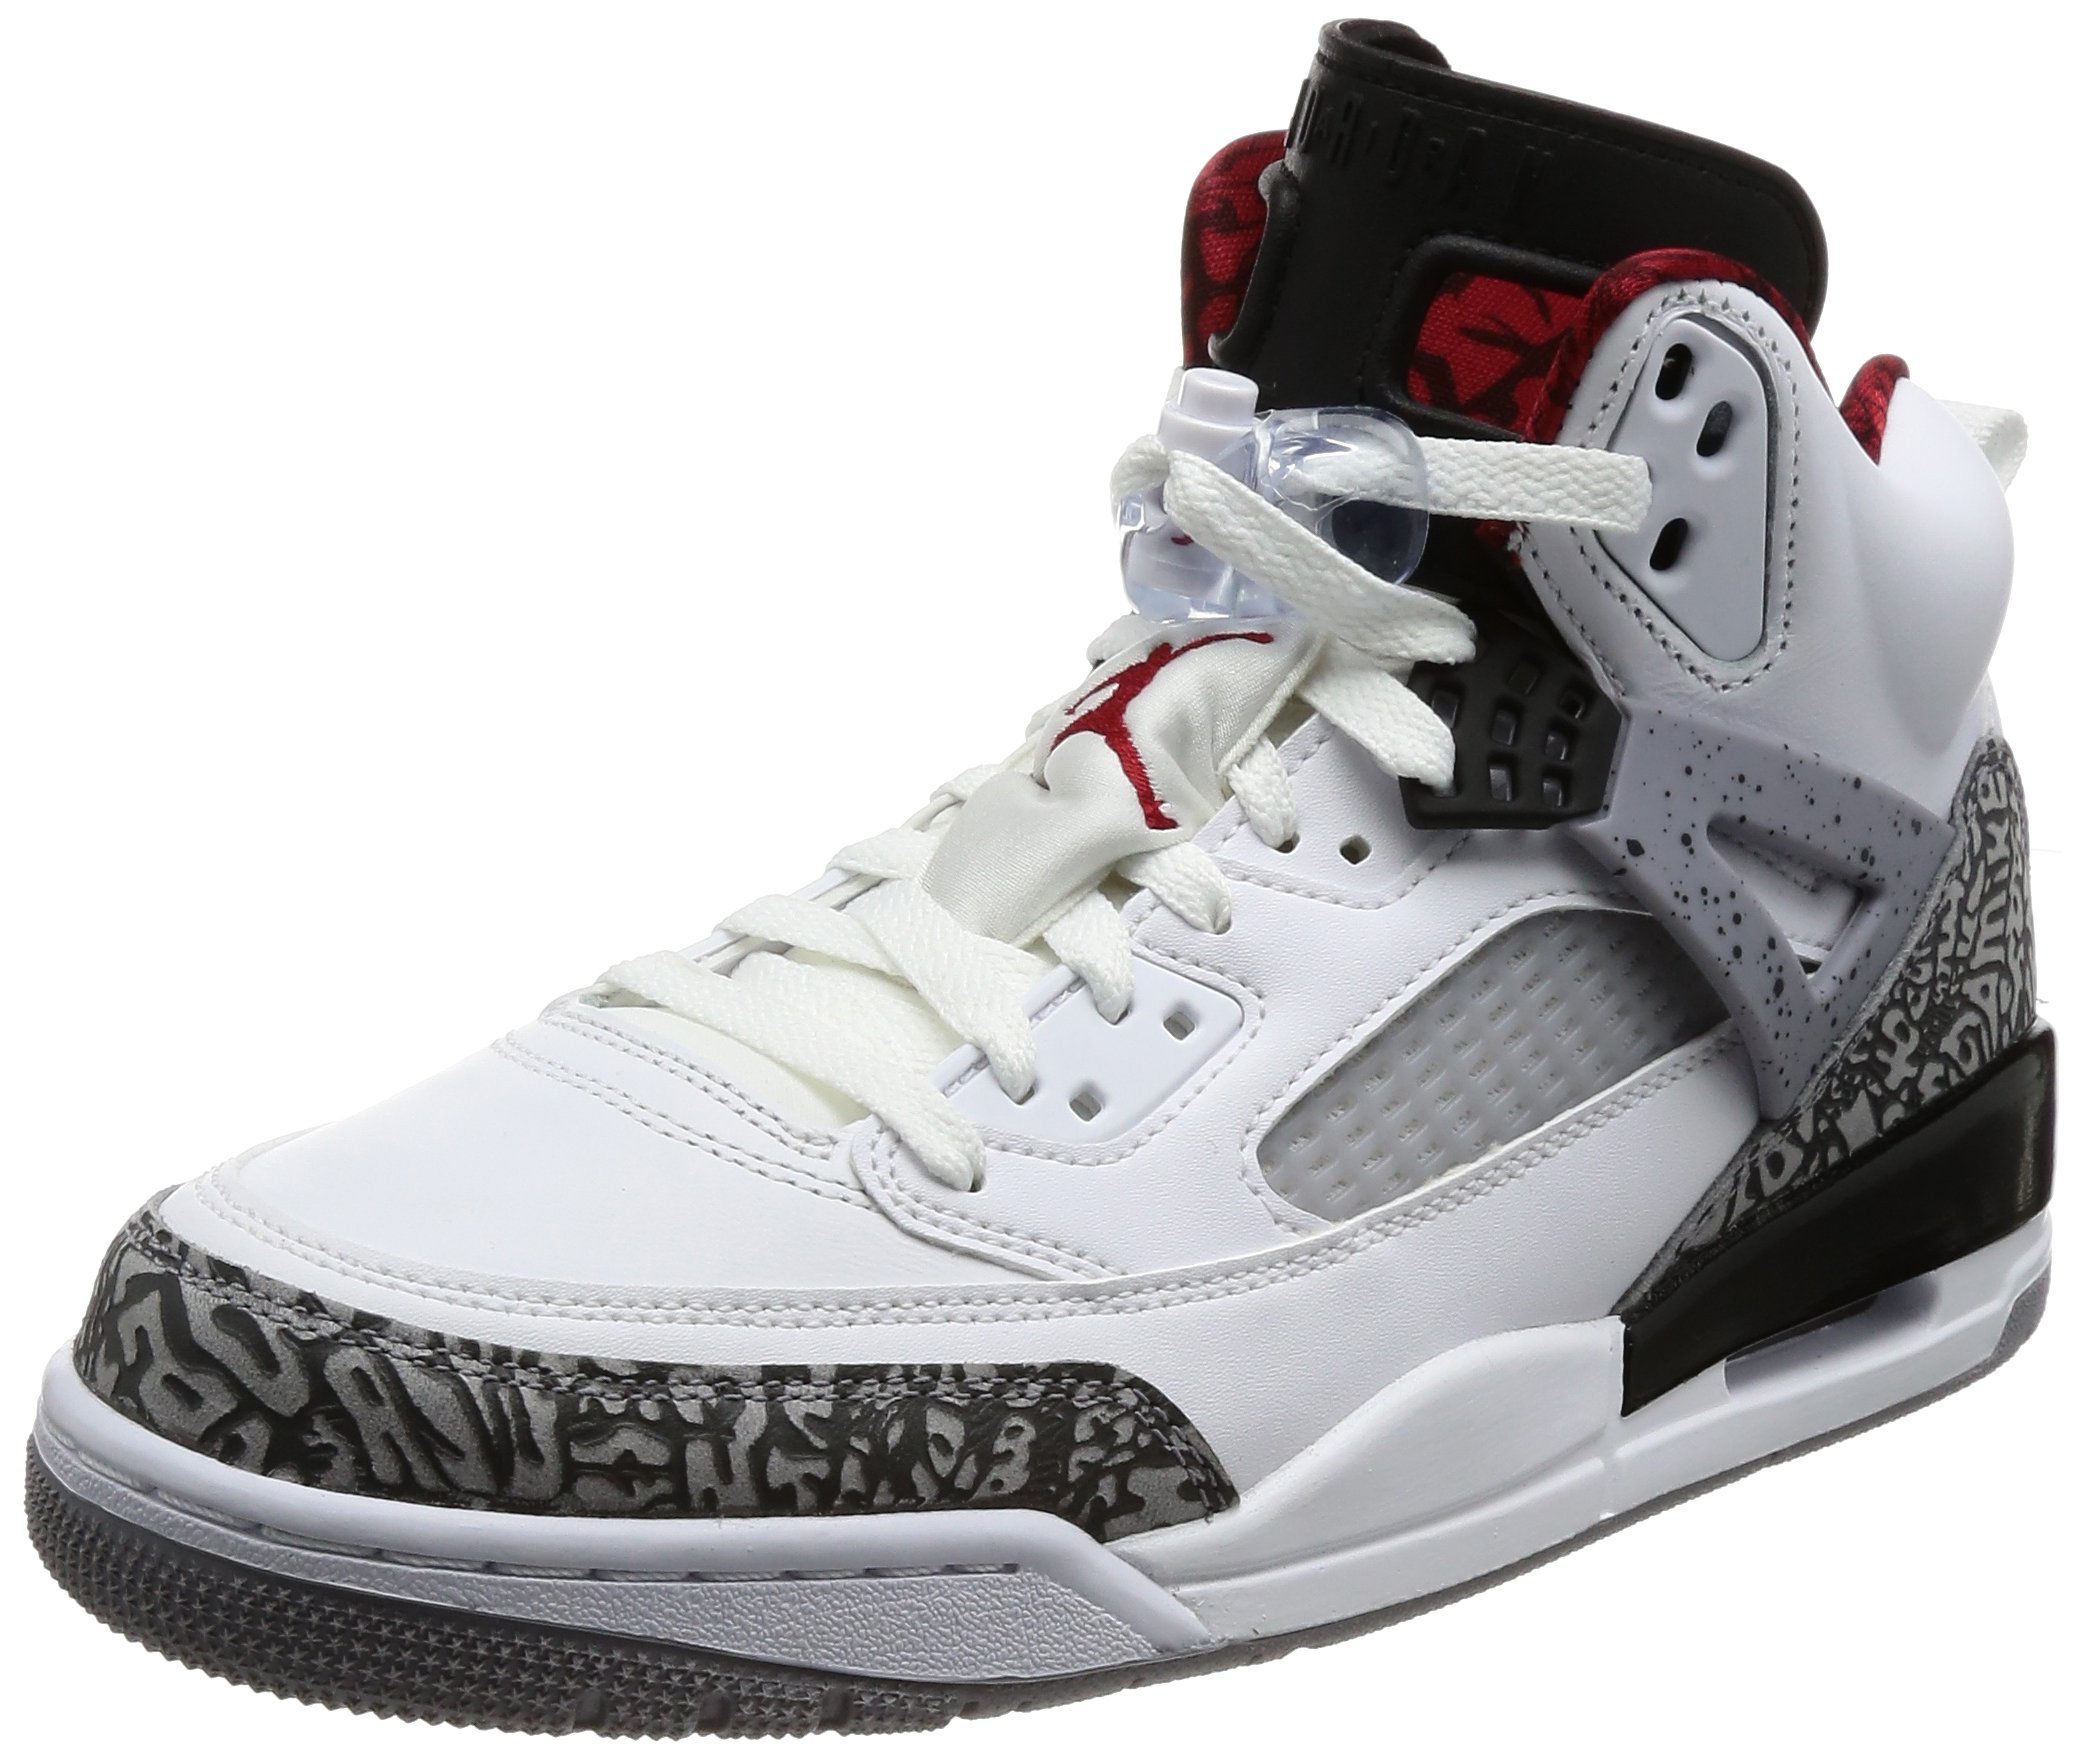 Nike Air Jordan Spizike Off Court Men's Basketball Shoes White/Cement Grey, 7.5 by NIKE